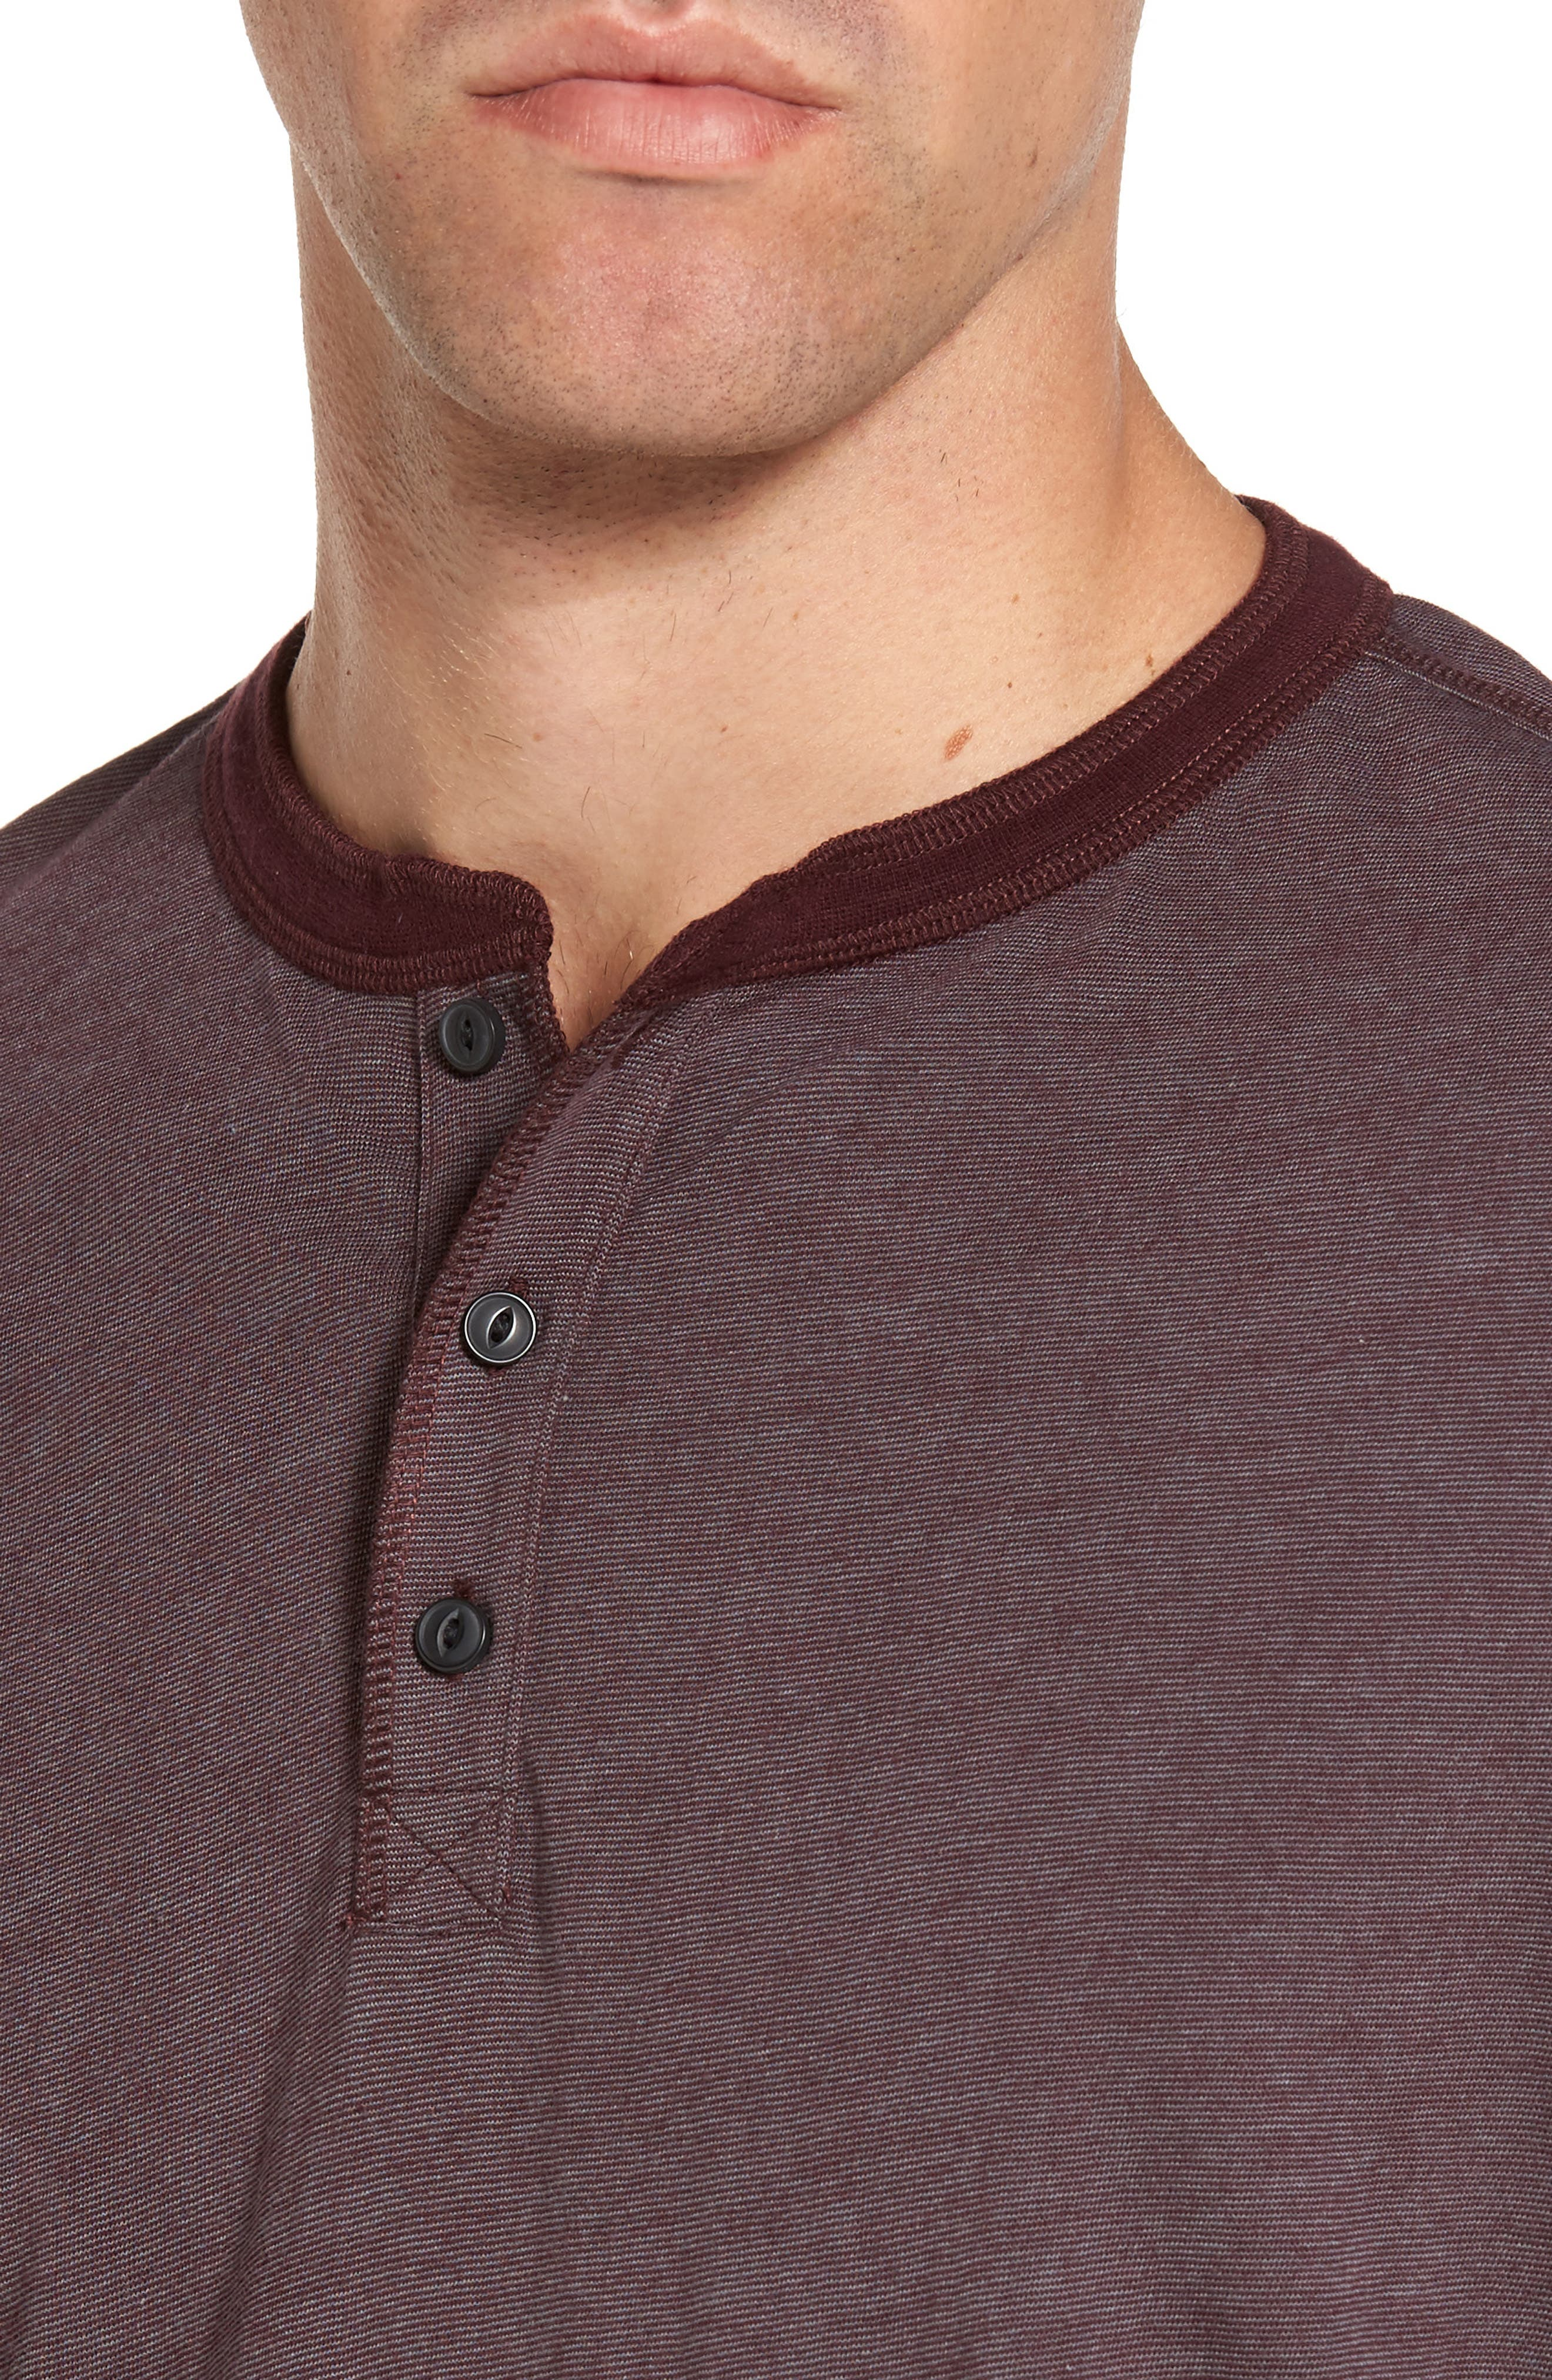 Stripe Henley,                             Alternate thumbnail 4, color,                             Burgundy Stem Eoe